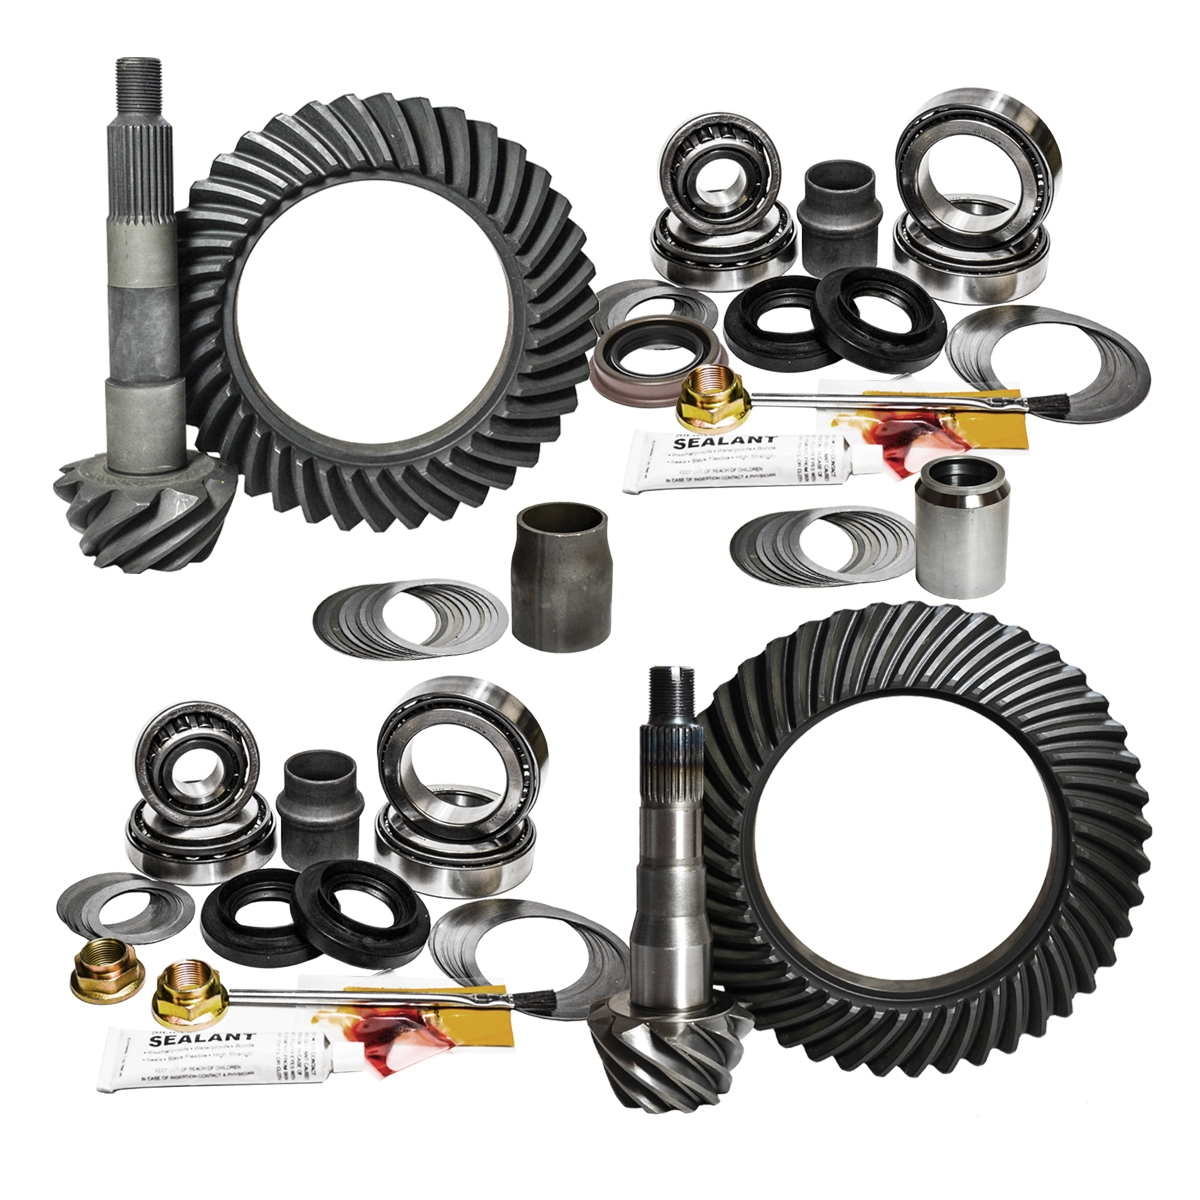 98-07 Toyota 100 Series W/E-Lock 4 88 Ratio Gear Package Kit Nitro Gear and  Axle